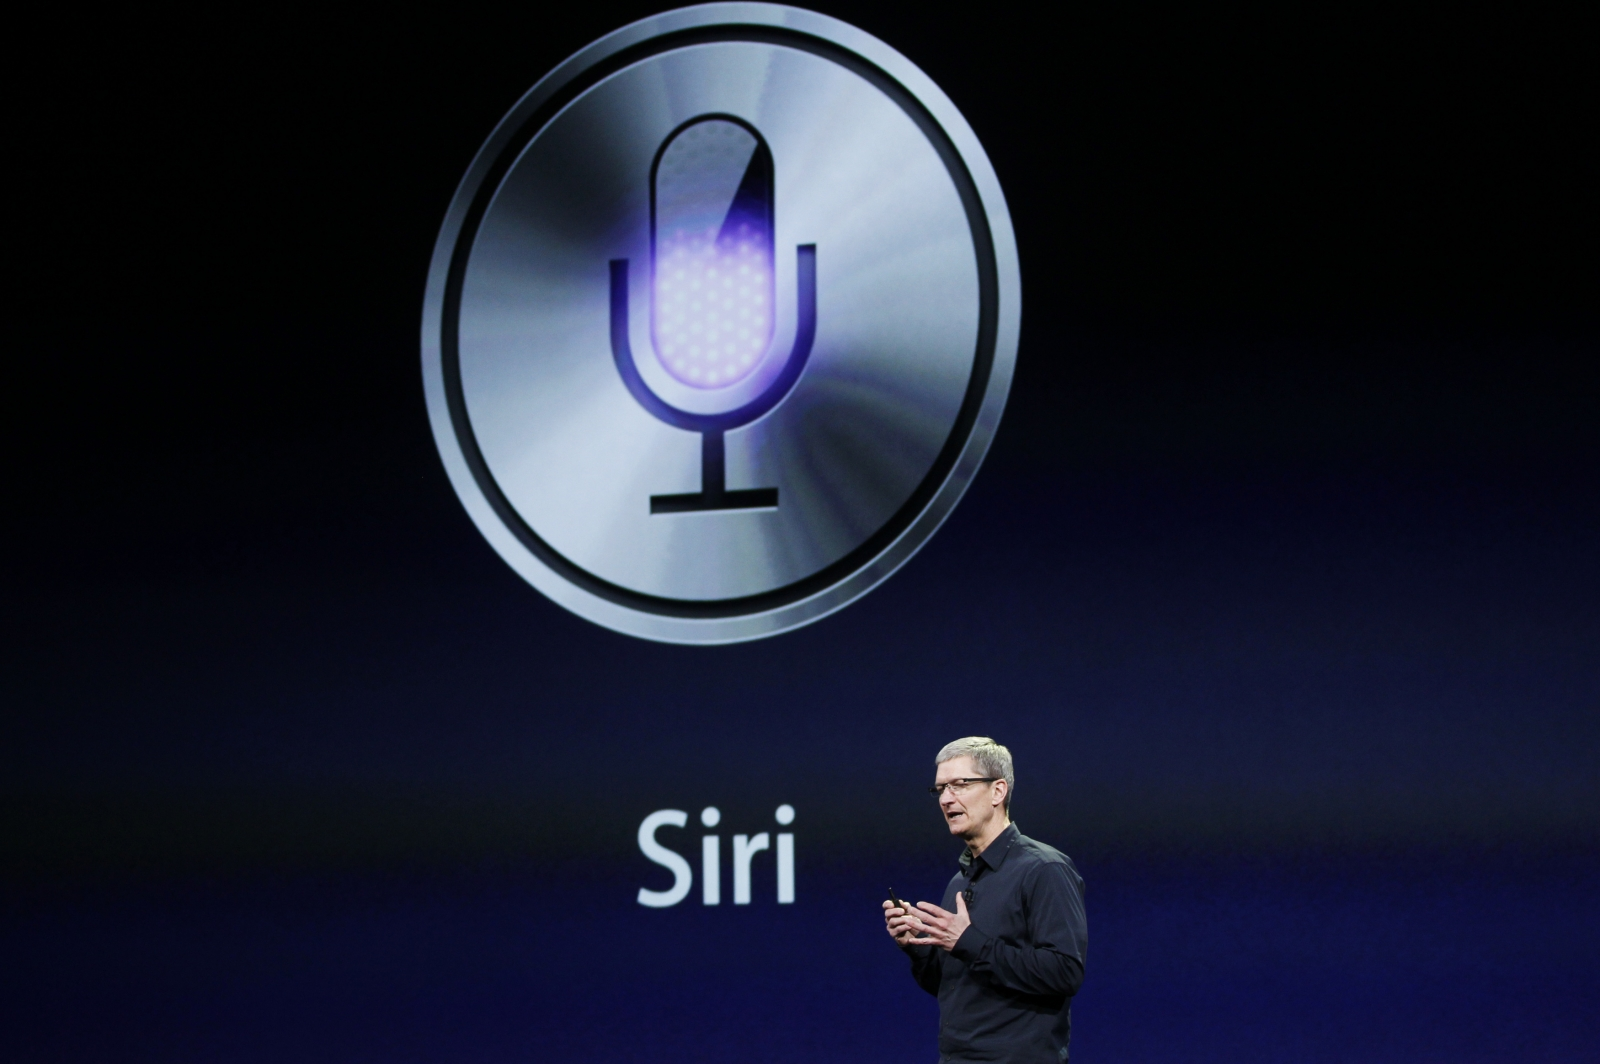 Apple change voicemail with Siri